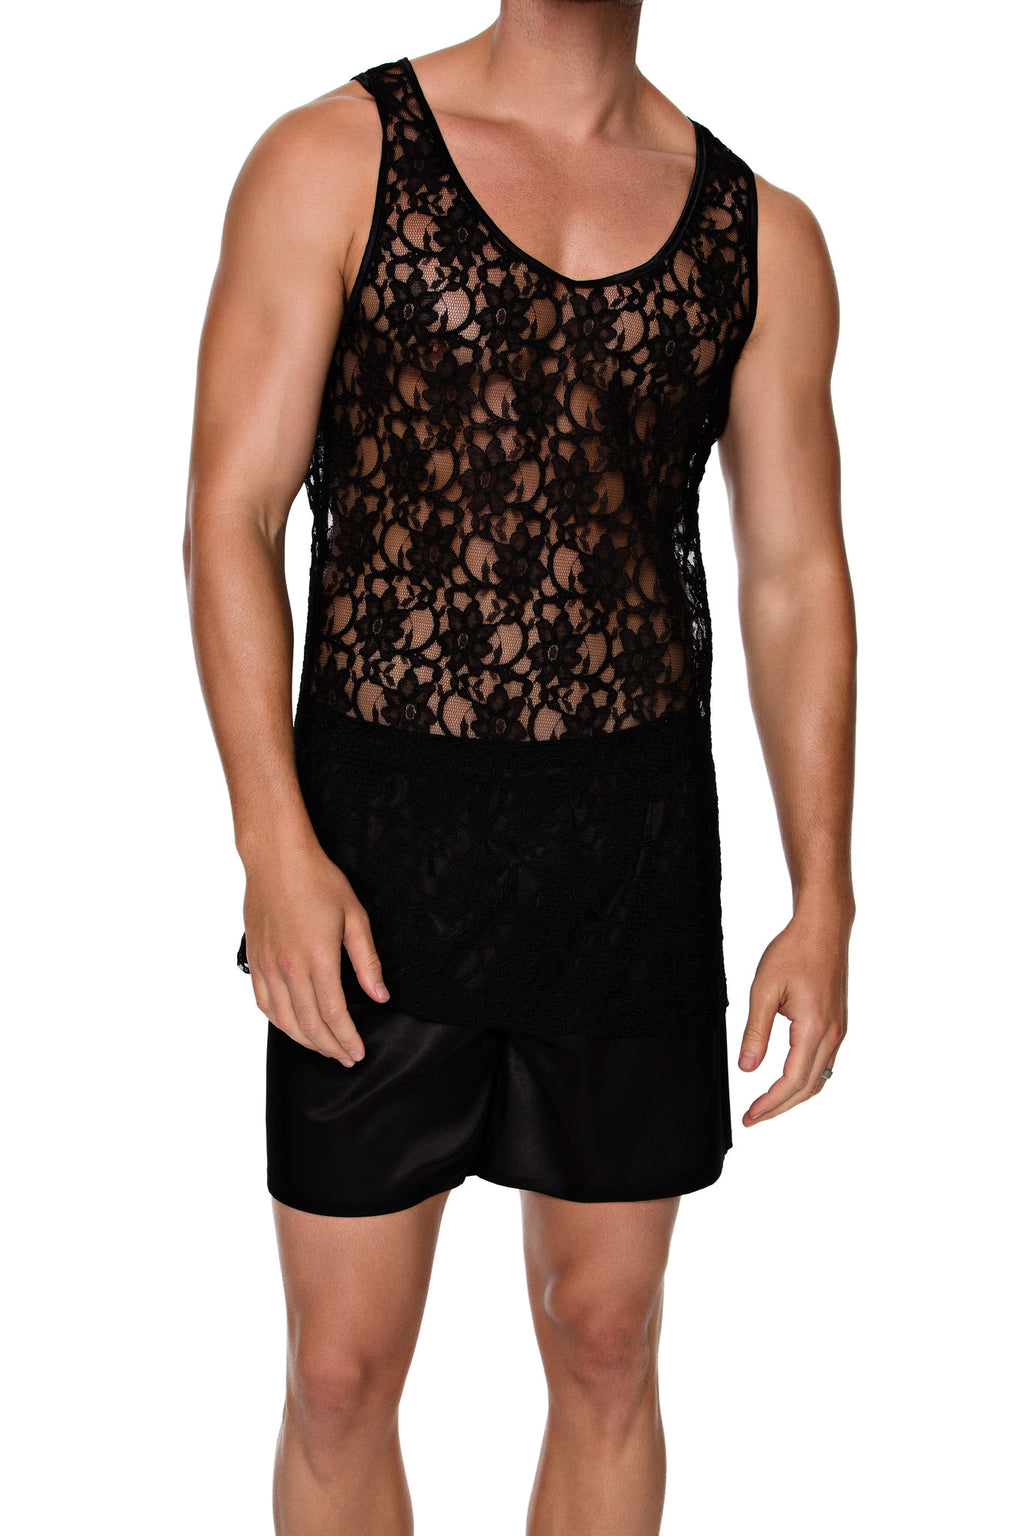 TANK in LACE - MENAGERIE Intimates MENS Lingerie